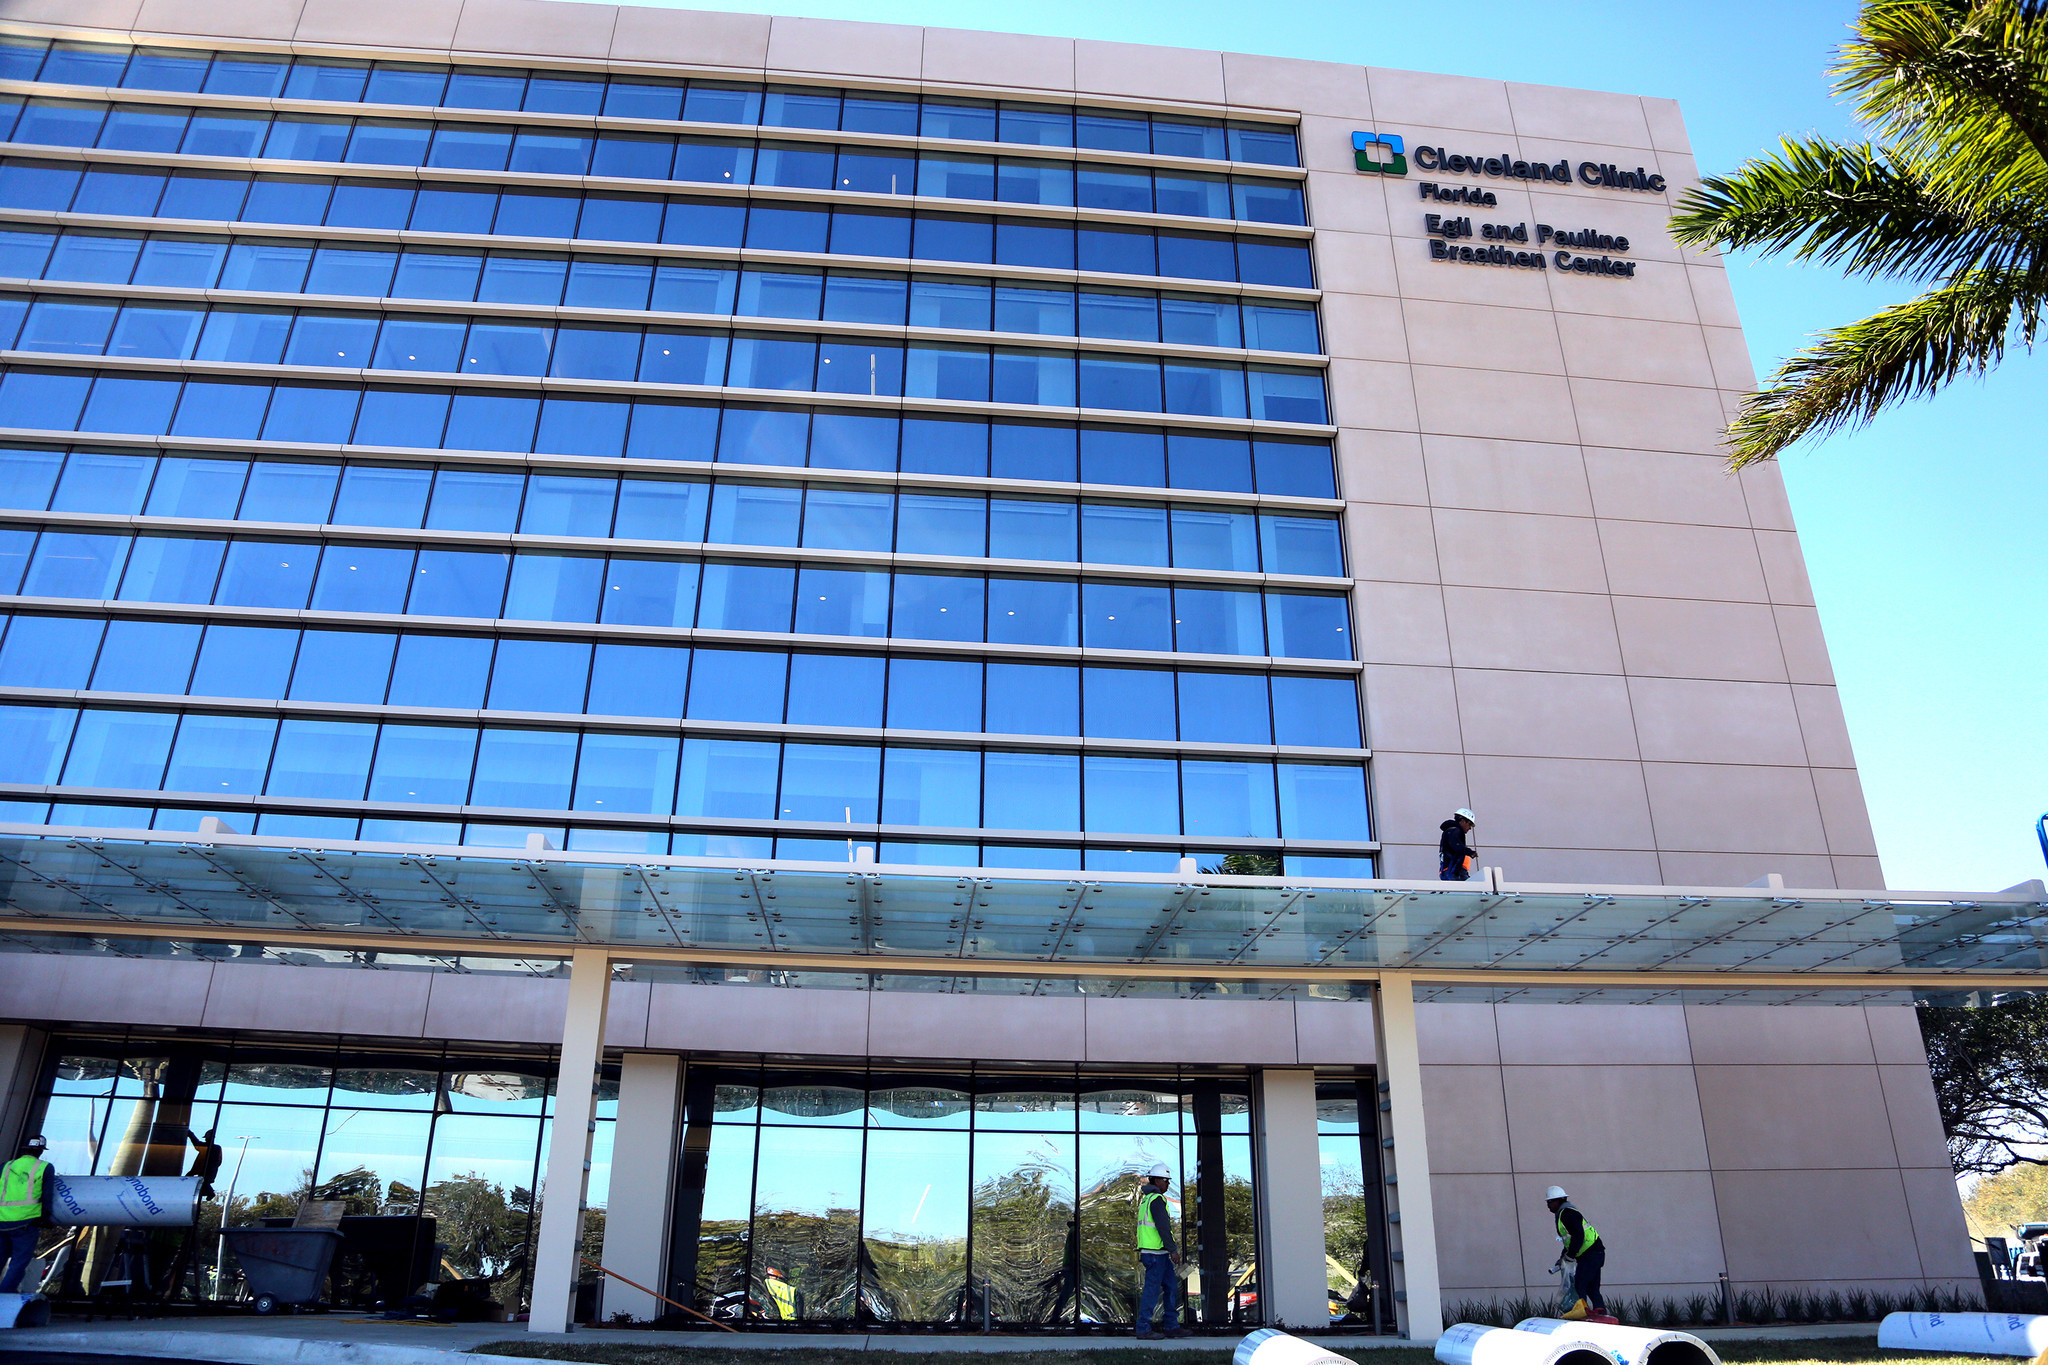 cleveland clinic florida adds 783m into local economy report finds sun sentinel